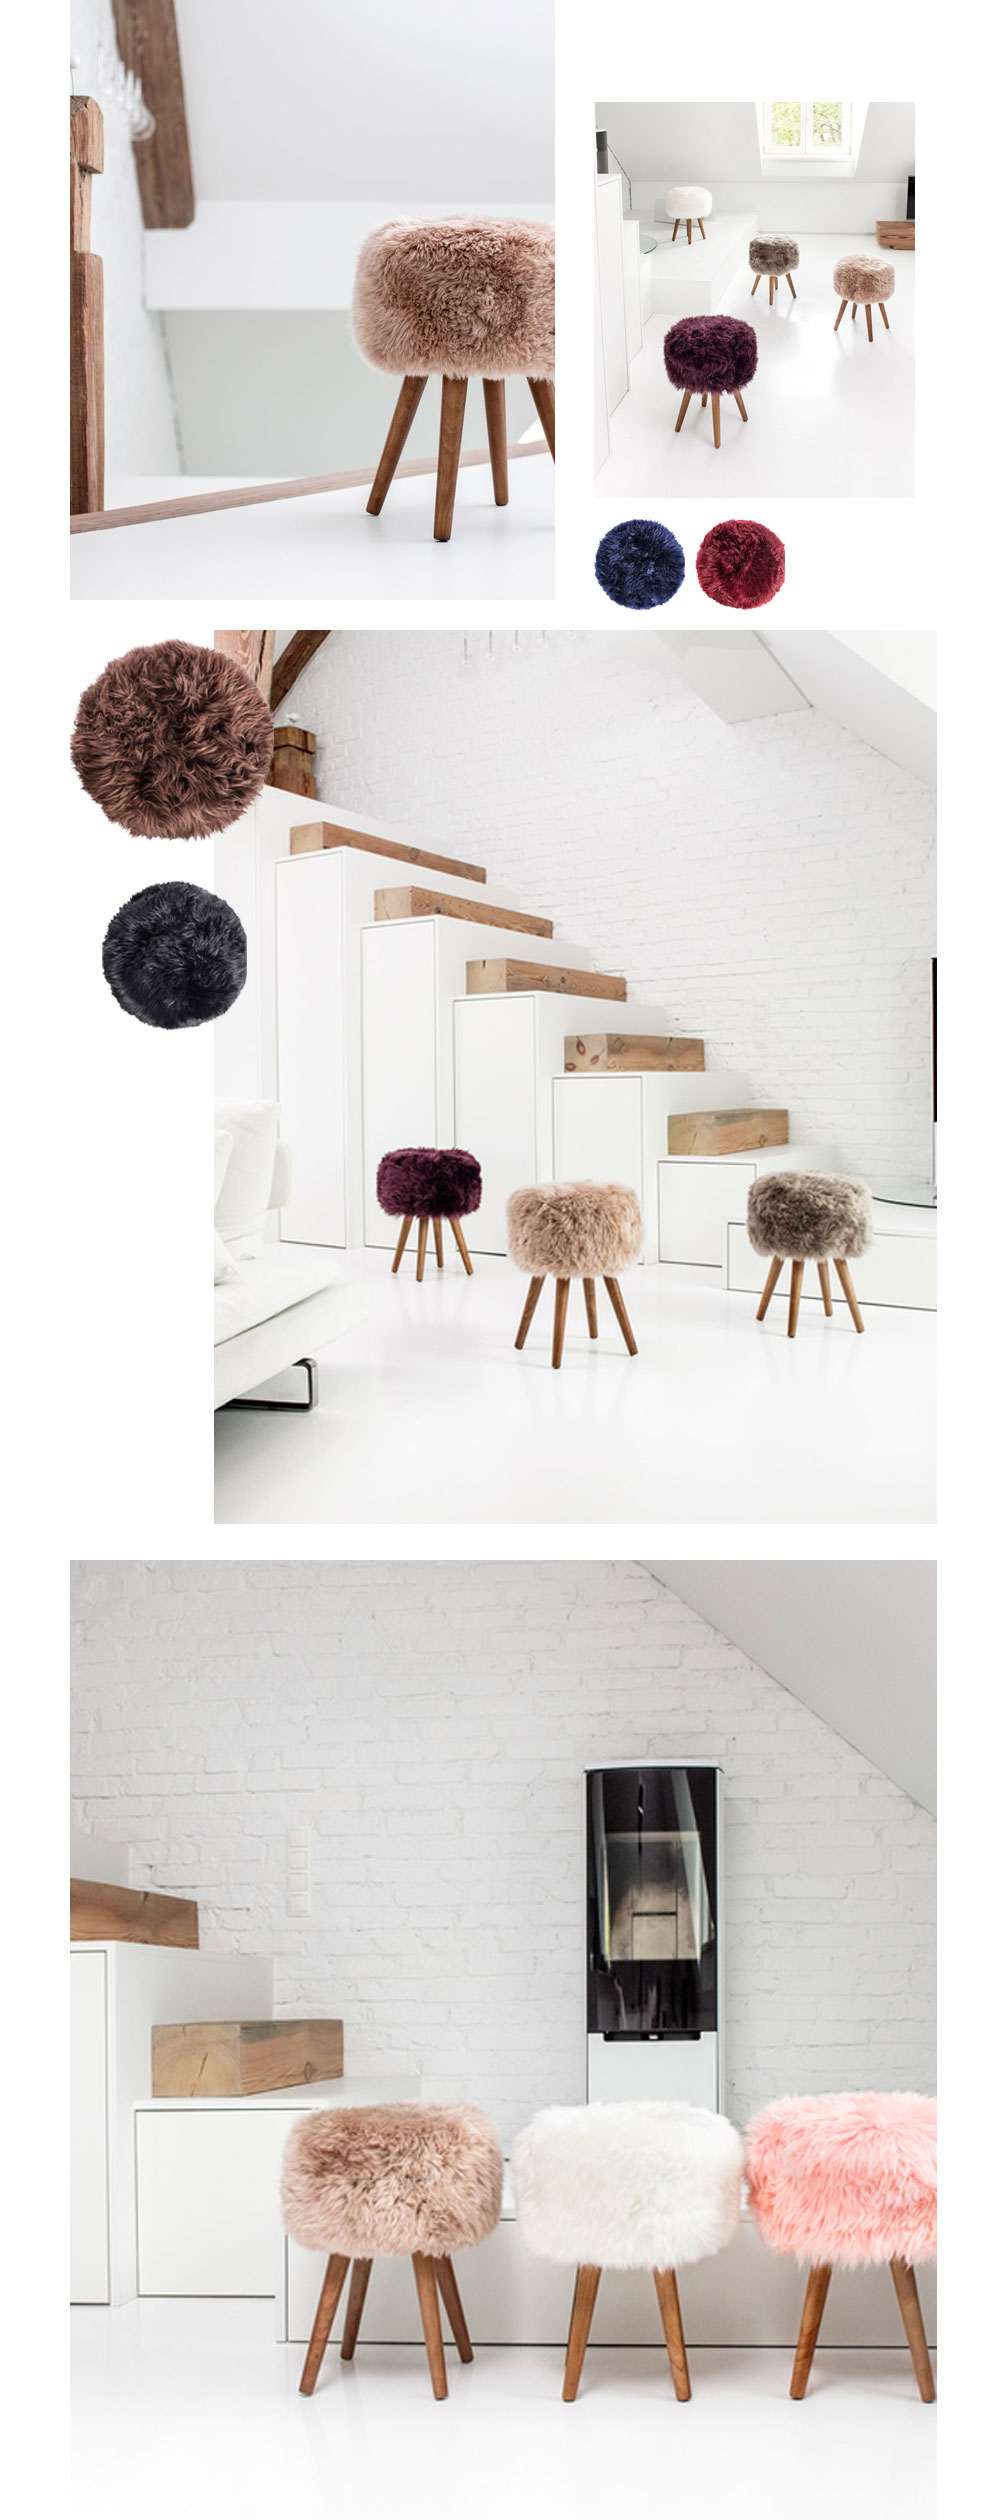 New Zealand Sheepskin Stool Extra Comfort and Style to Your Home